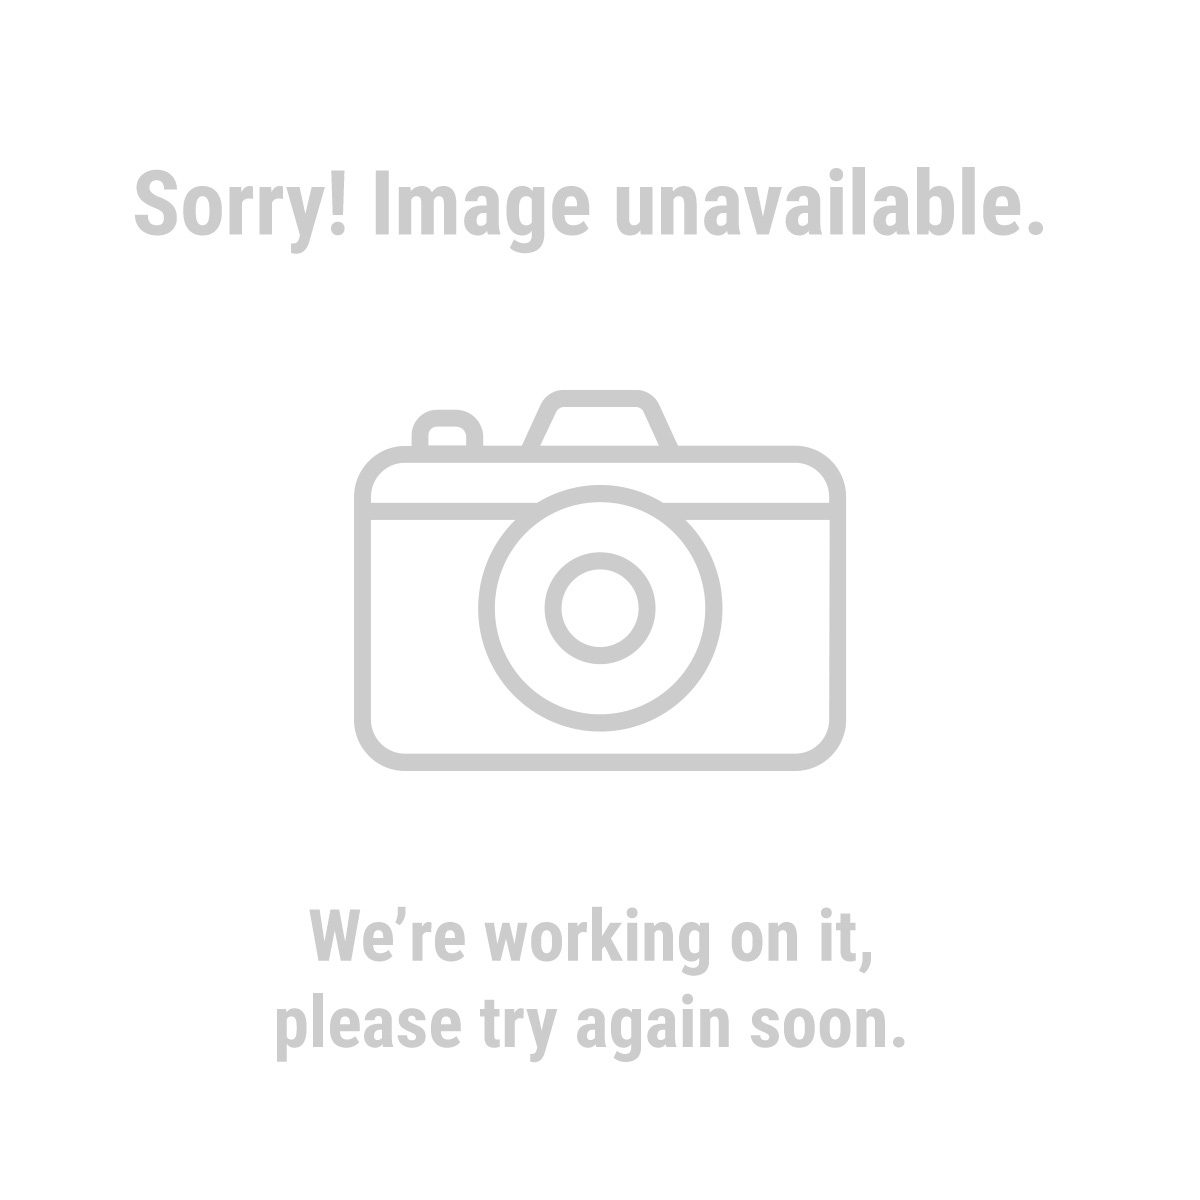 Western Safety Gloves 66287 Leather Industrial Work Gloves, 5 Pairs